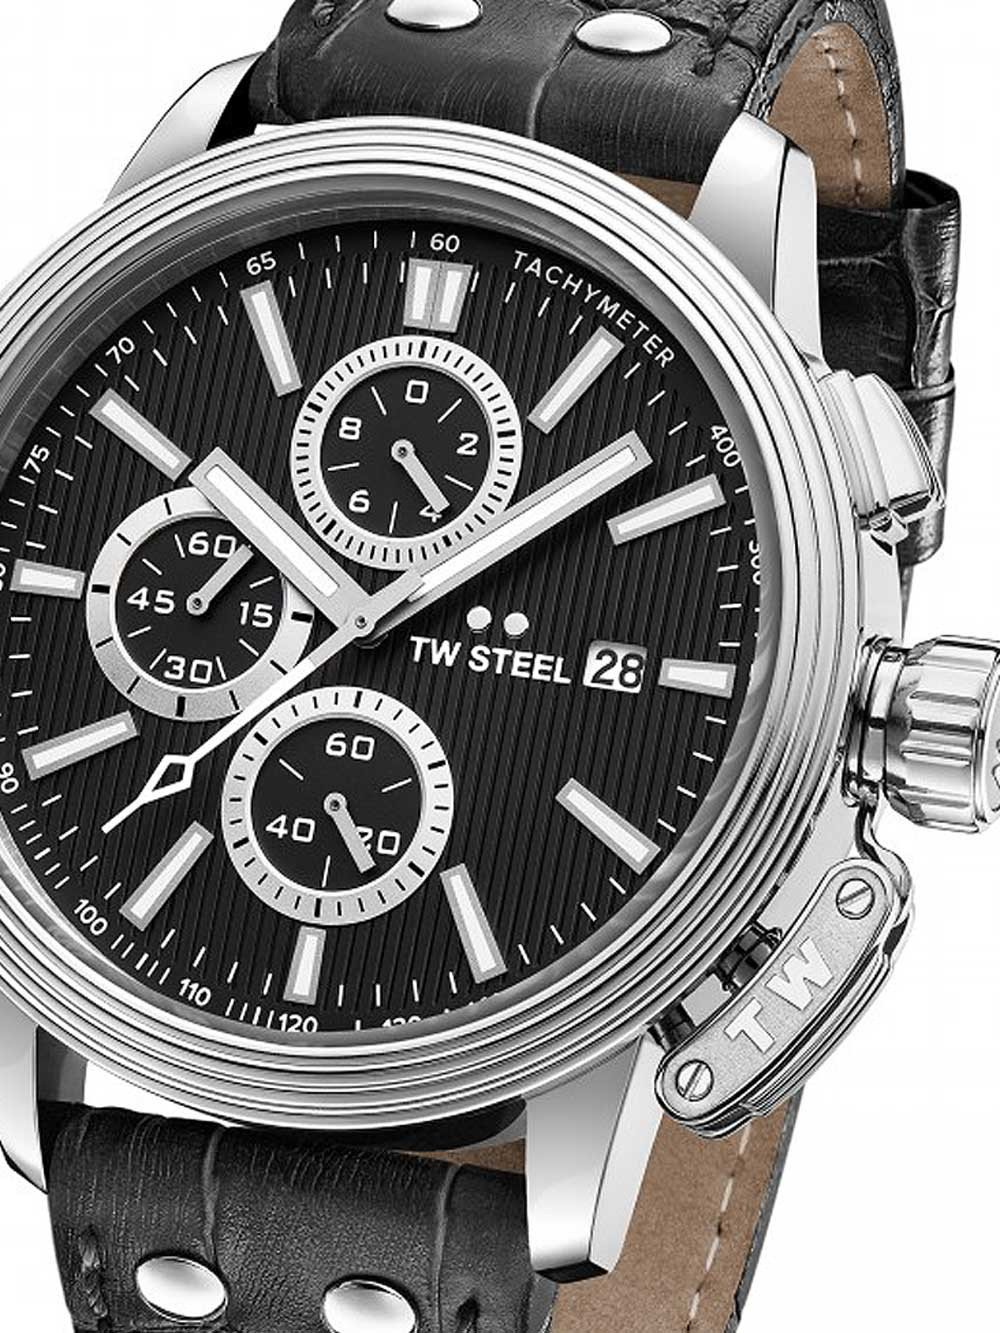 TW-Steel CE7002 Adesso Chronograph 48mm 10ATM